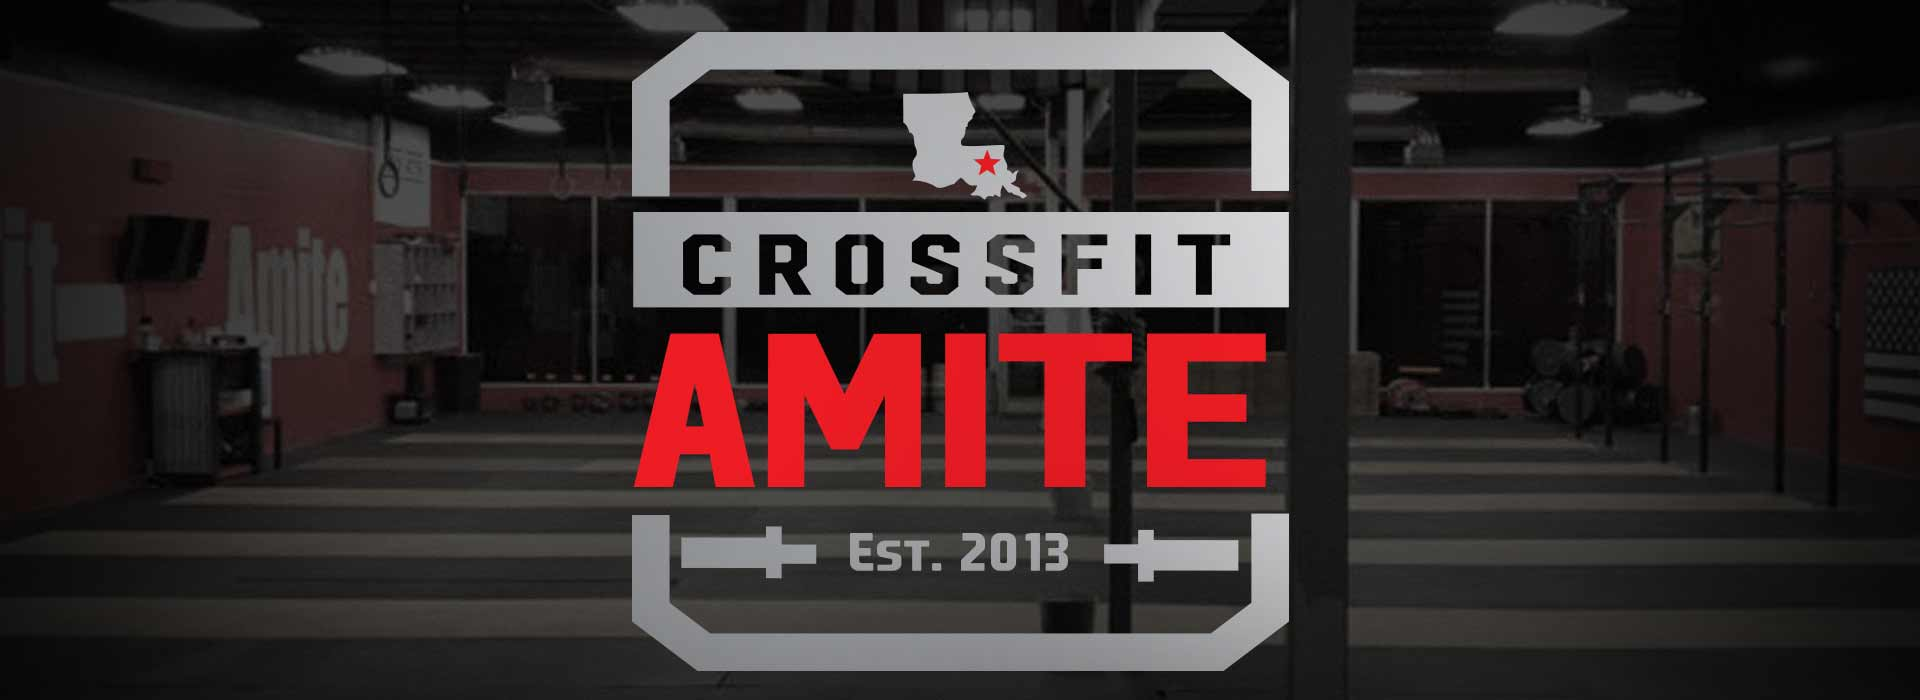 crossfit-amite-southern-apparel